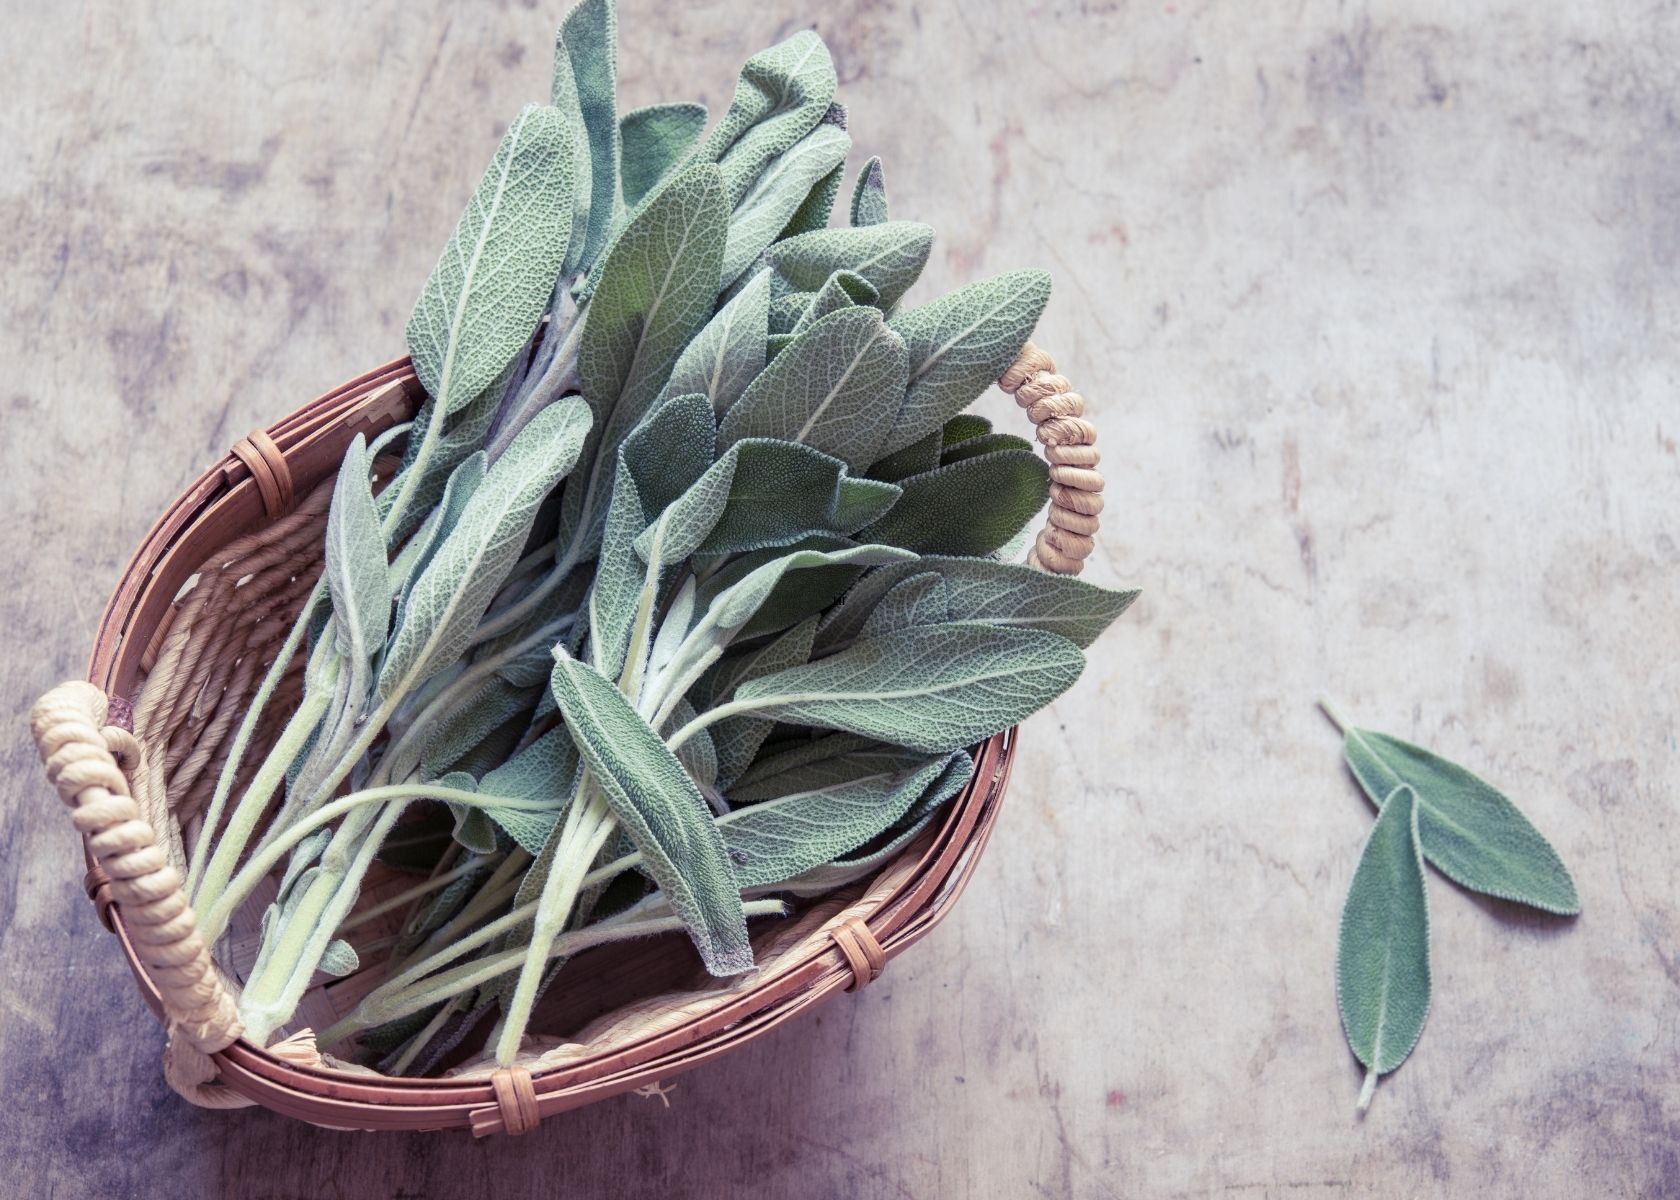 Leaves of fresh sage in rustic bowl on gray patterned table.